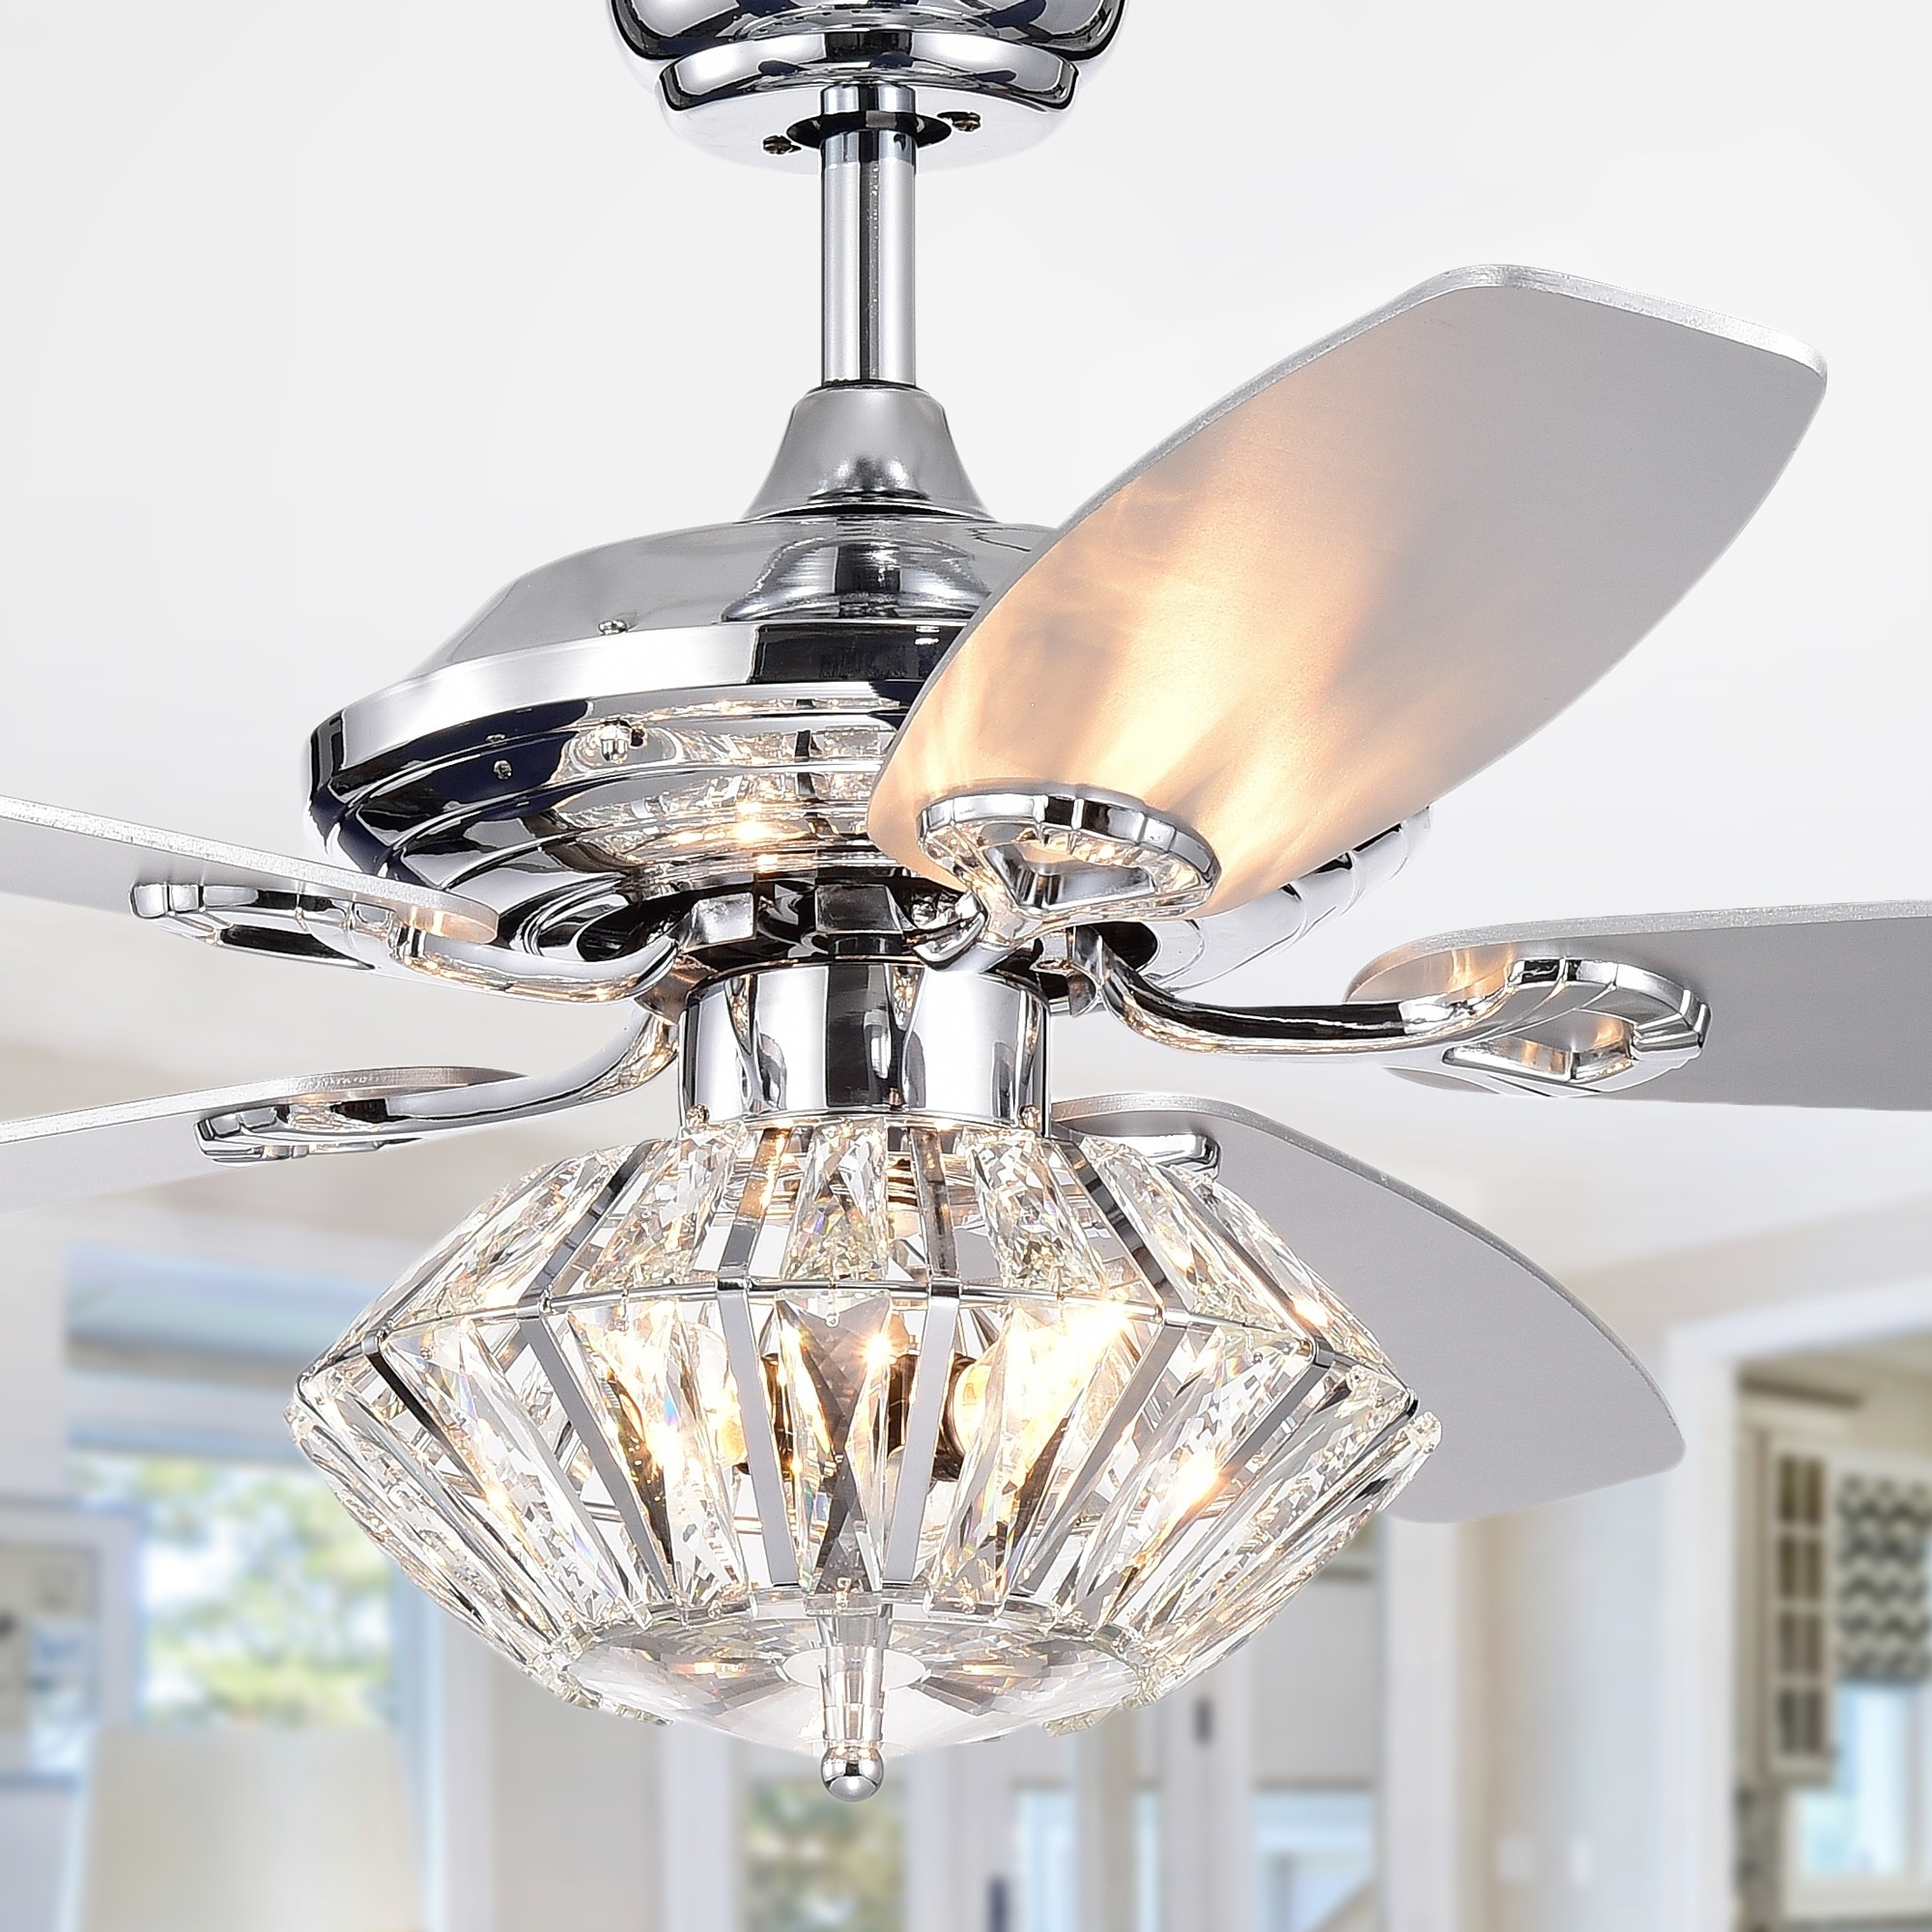 Makore chrome 52 inch lighted ceiling fan with crystal shade incl remote 2 color option blades